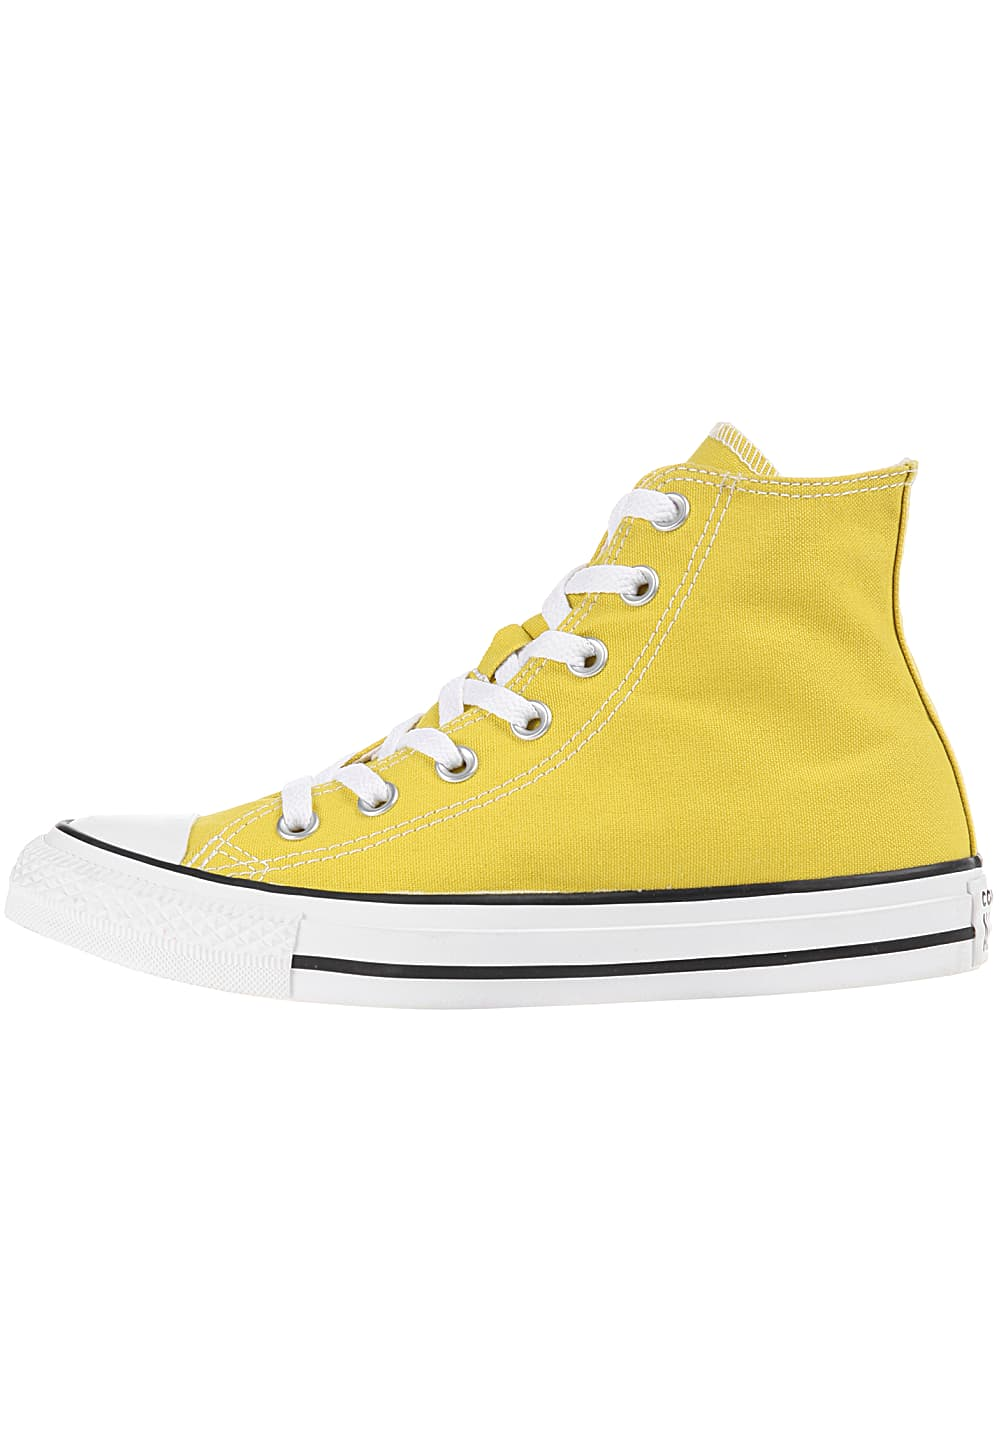 Converse Chuck Taylor All Star Hi Sneakers for Women Yellow